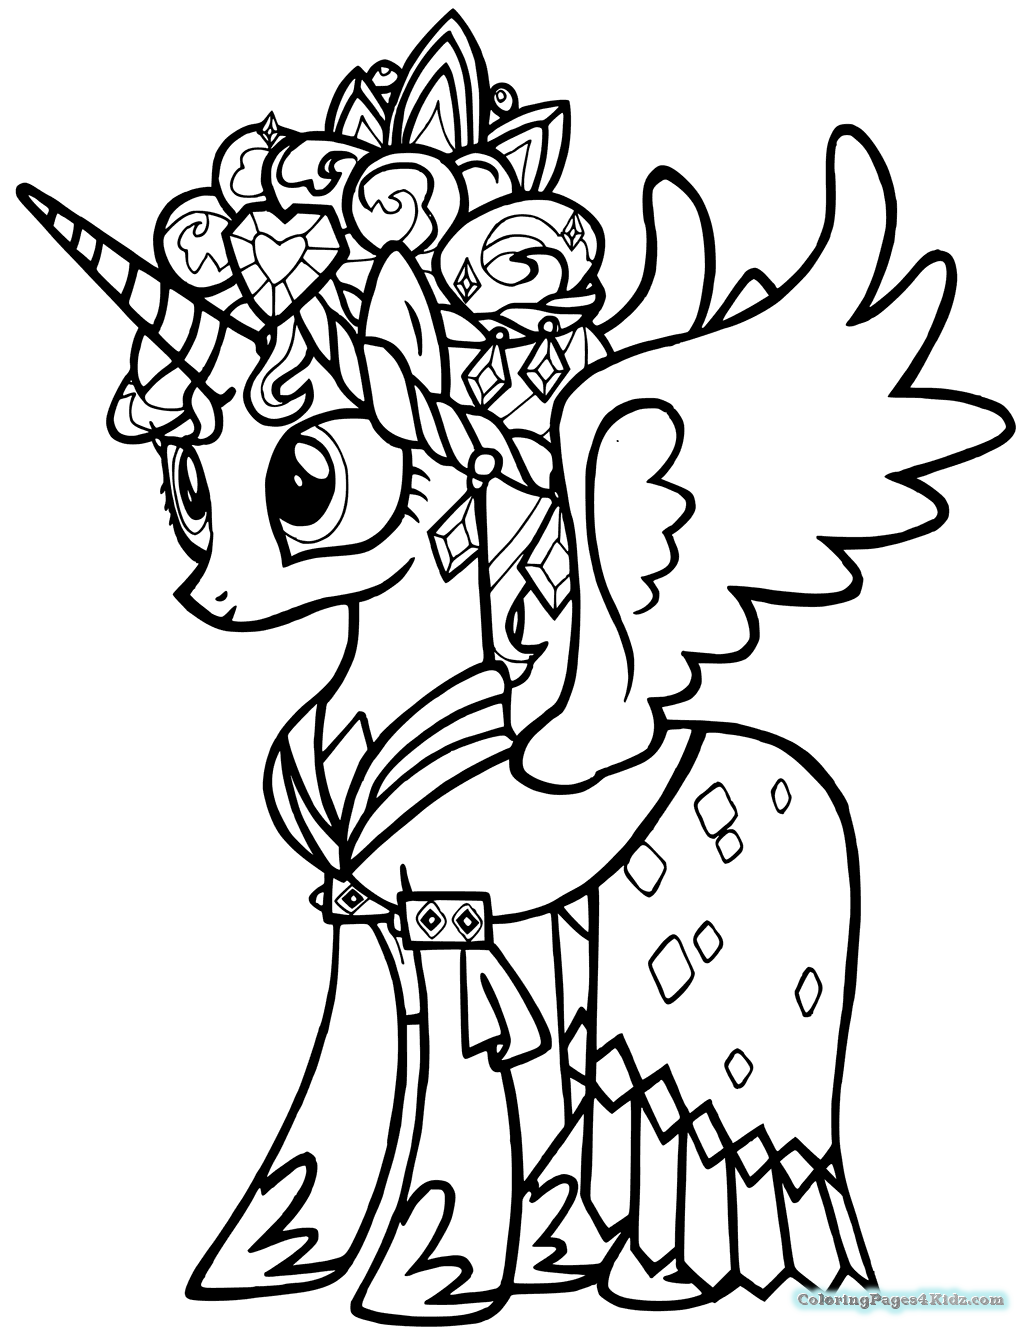 my little pony princess cadence coloring page my little pony princess cadence coloring pages cadence page princess little my pony coloring